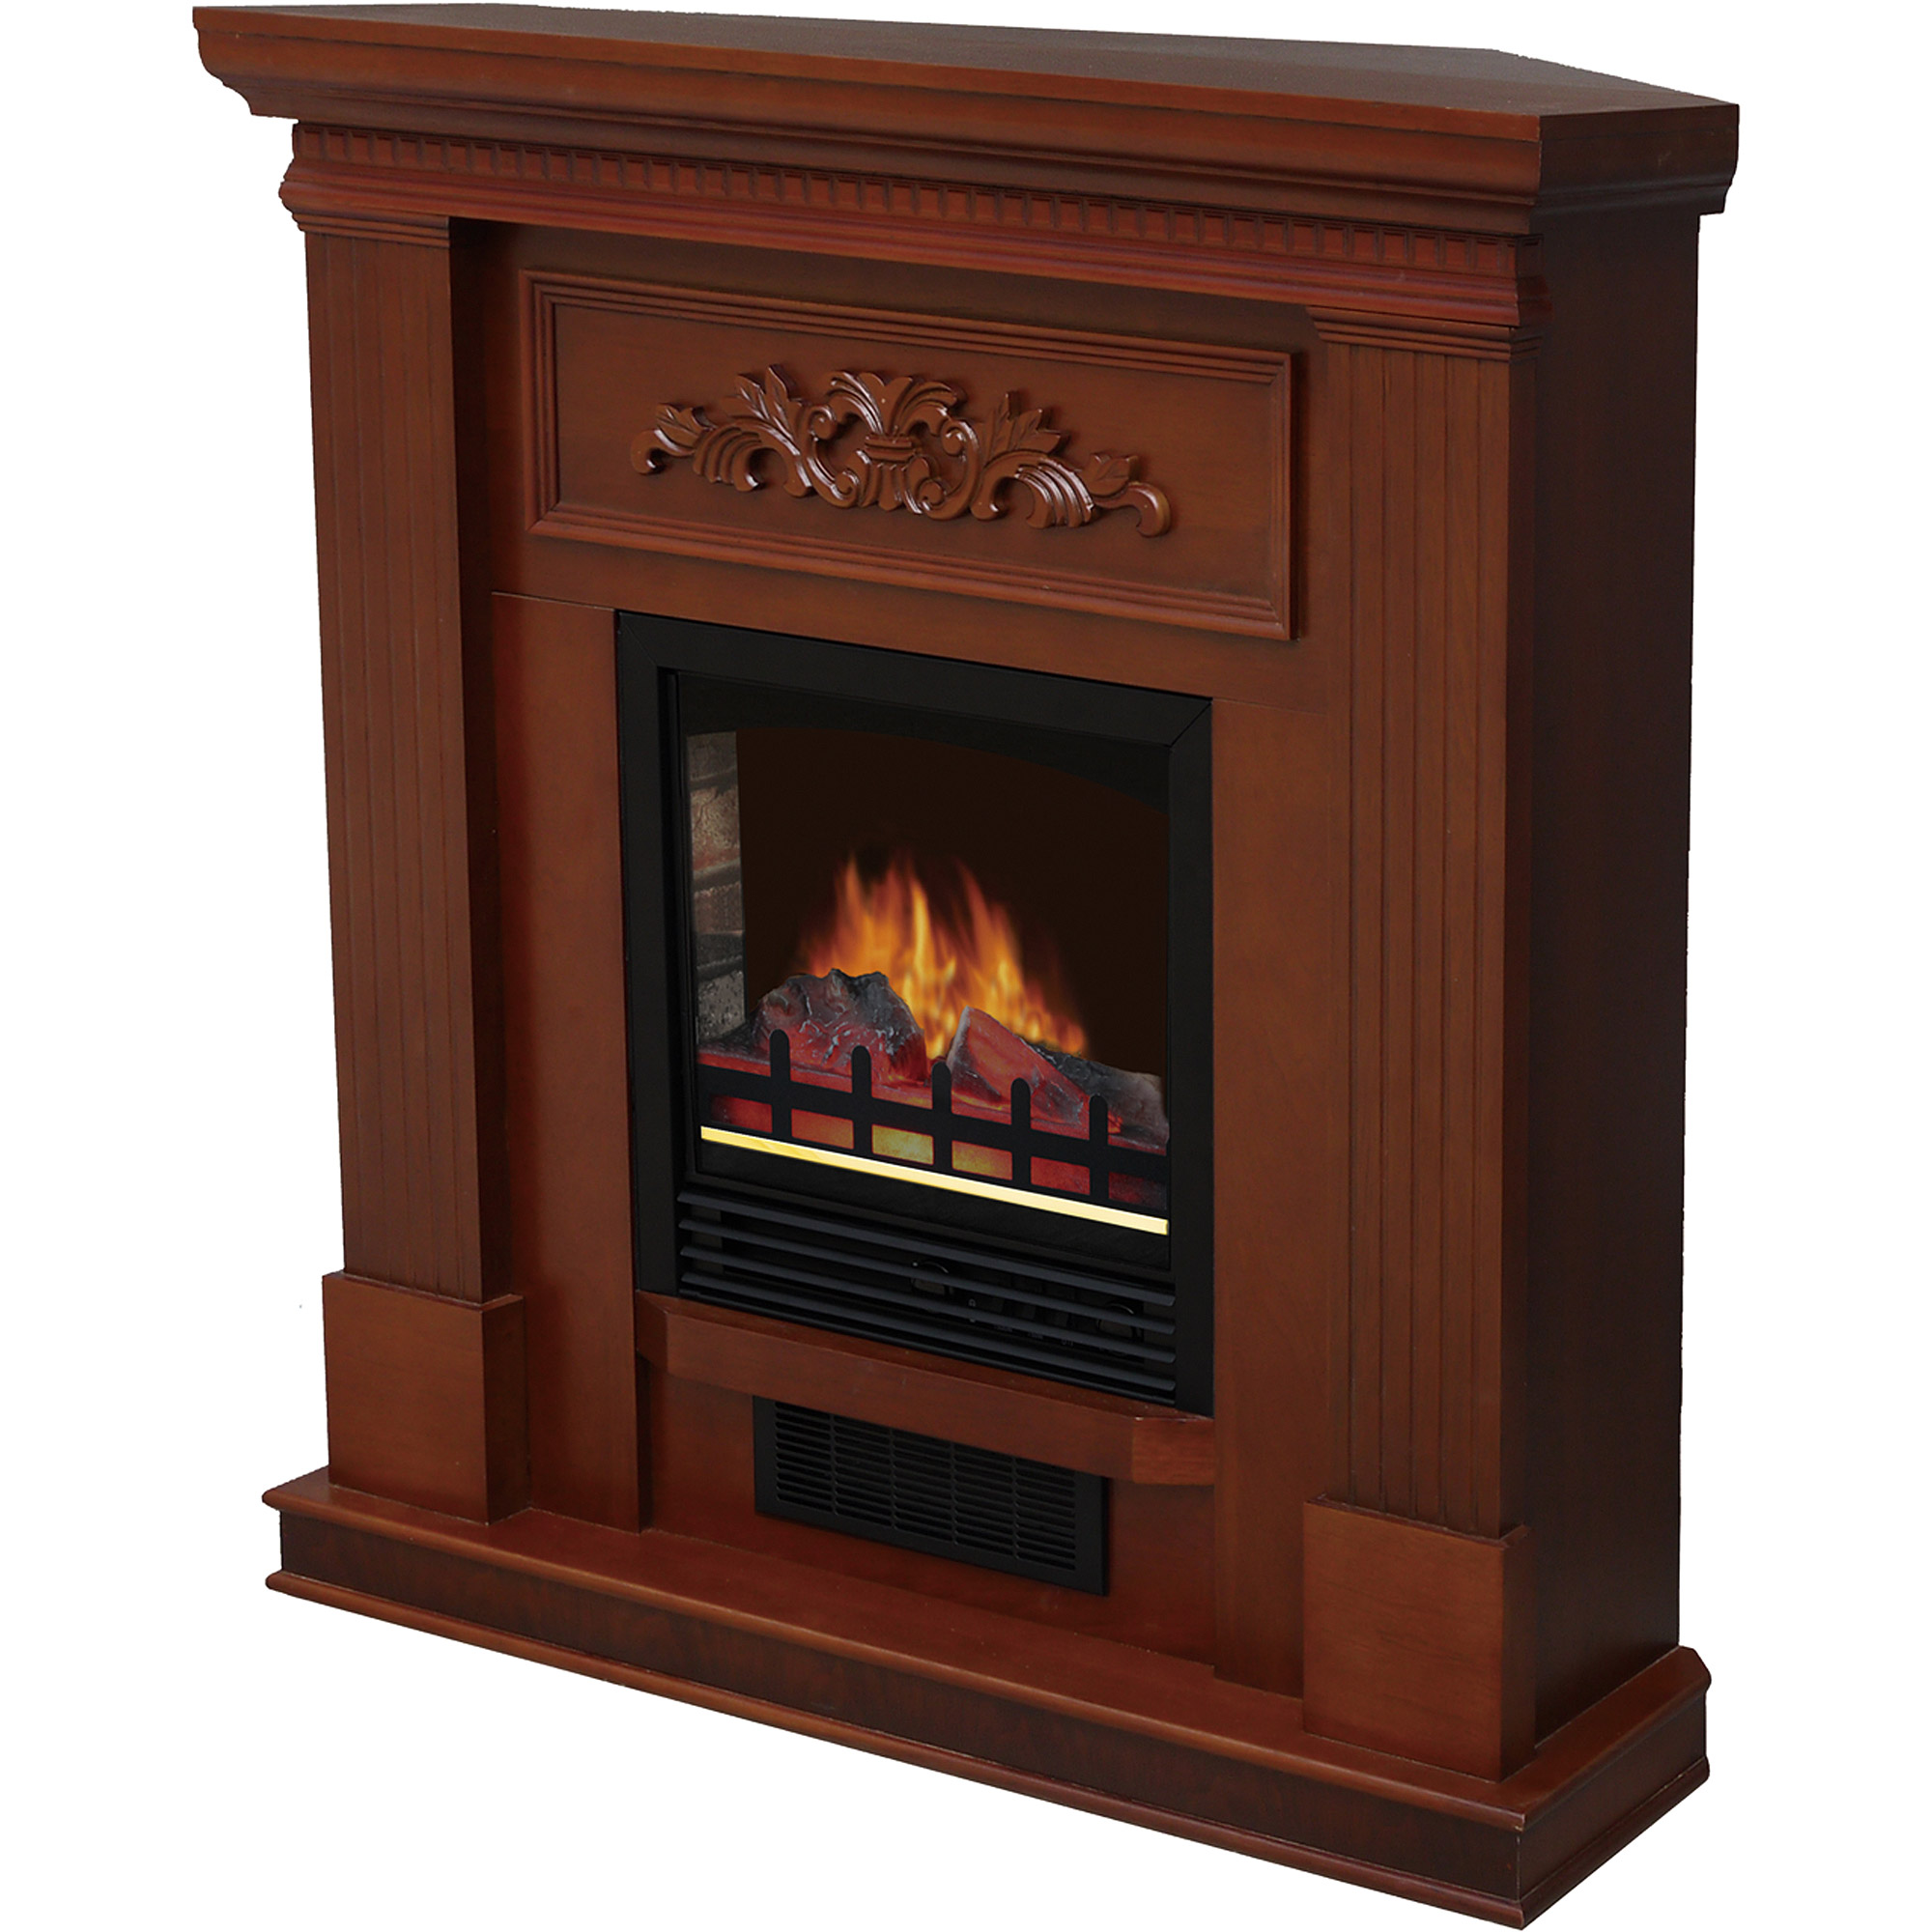 "Shop for Electric Fireplaces in Fireplaces. Buy products such as Decor-Flame Electric Space Heater Fireplace with 28"" Mantle"